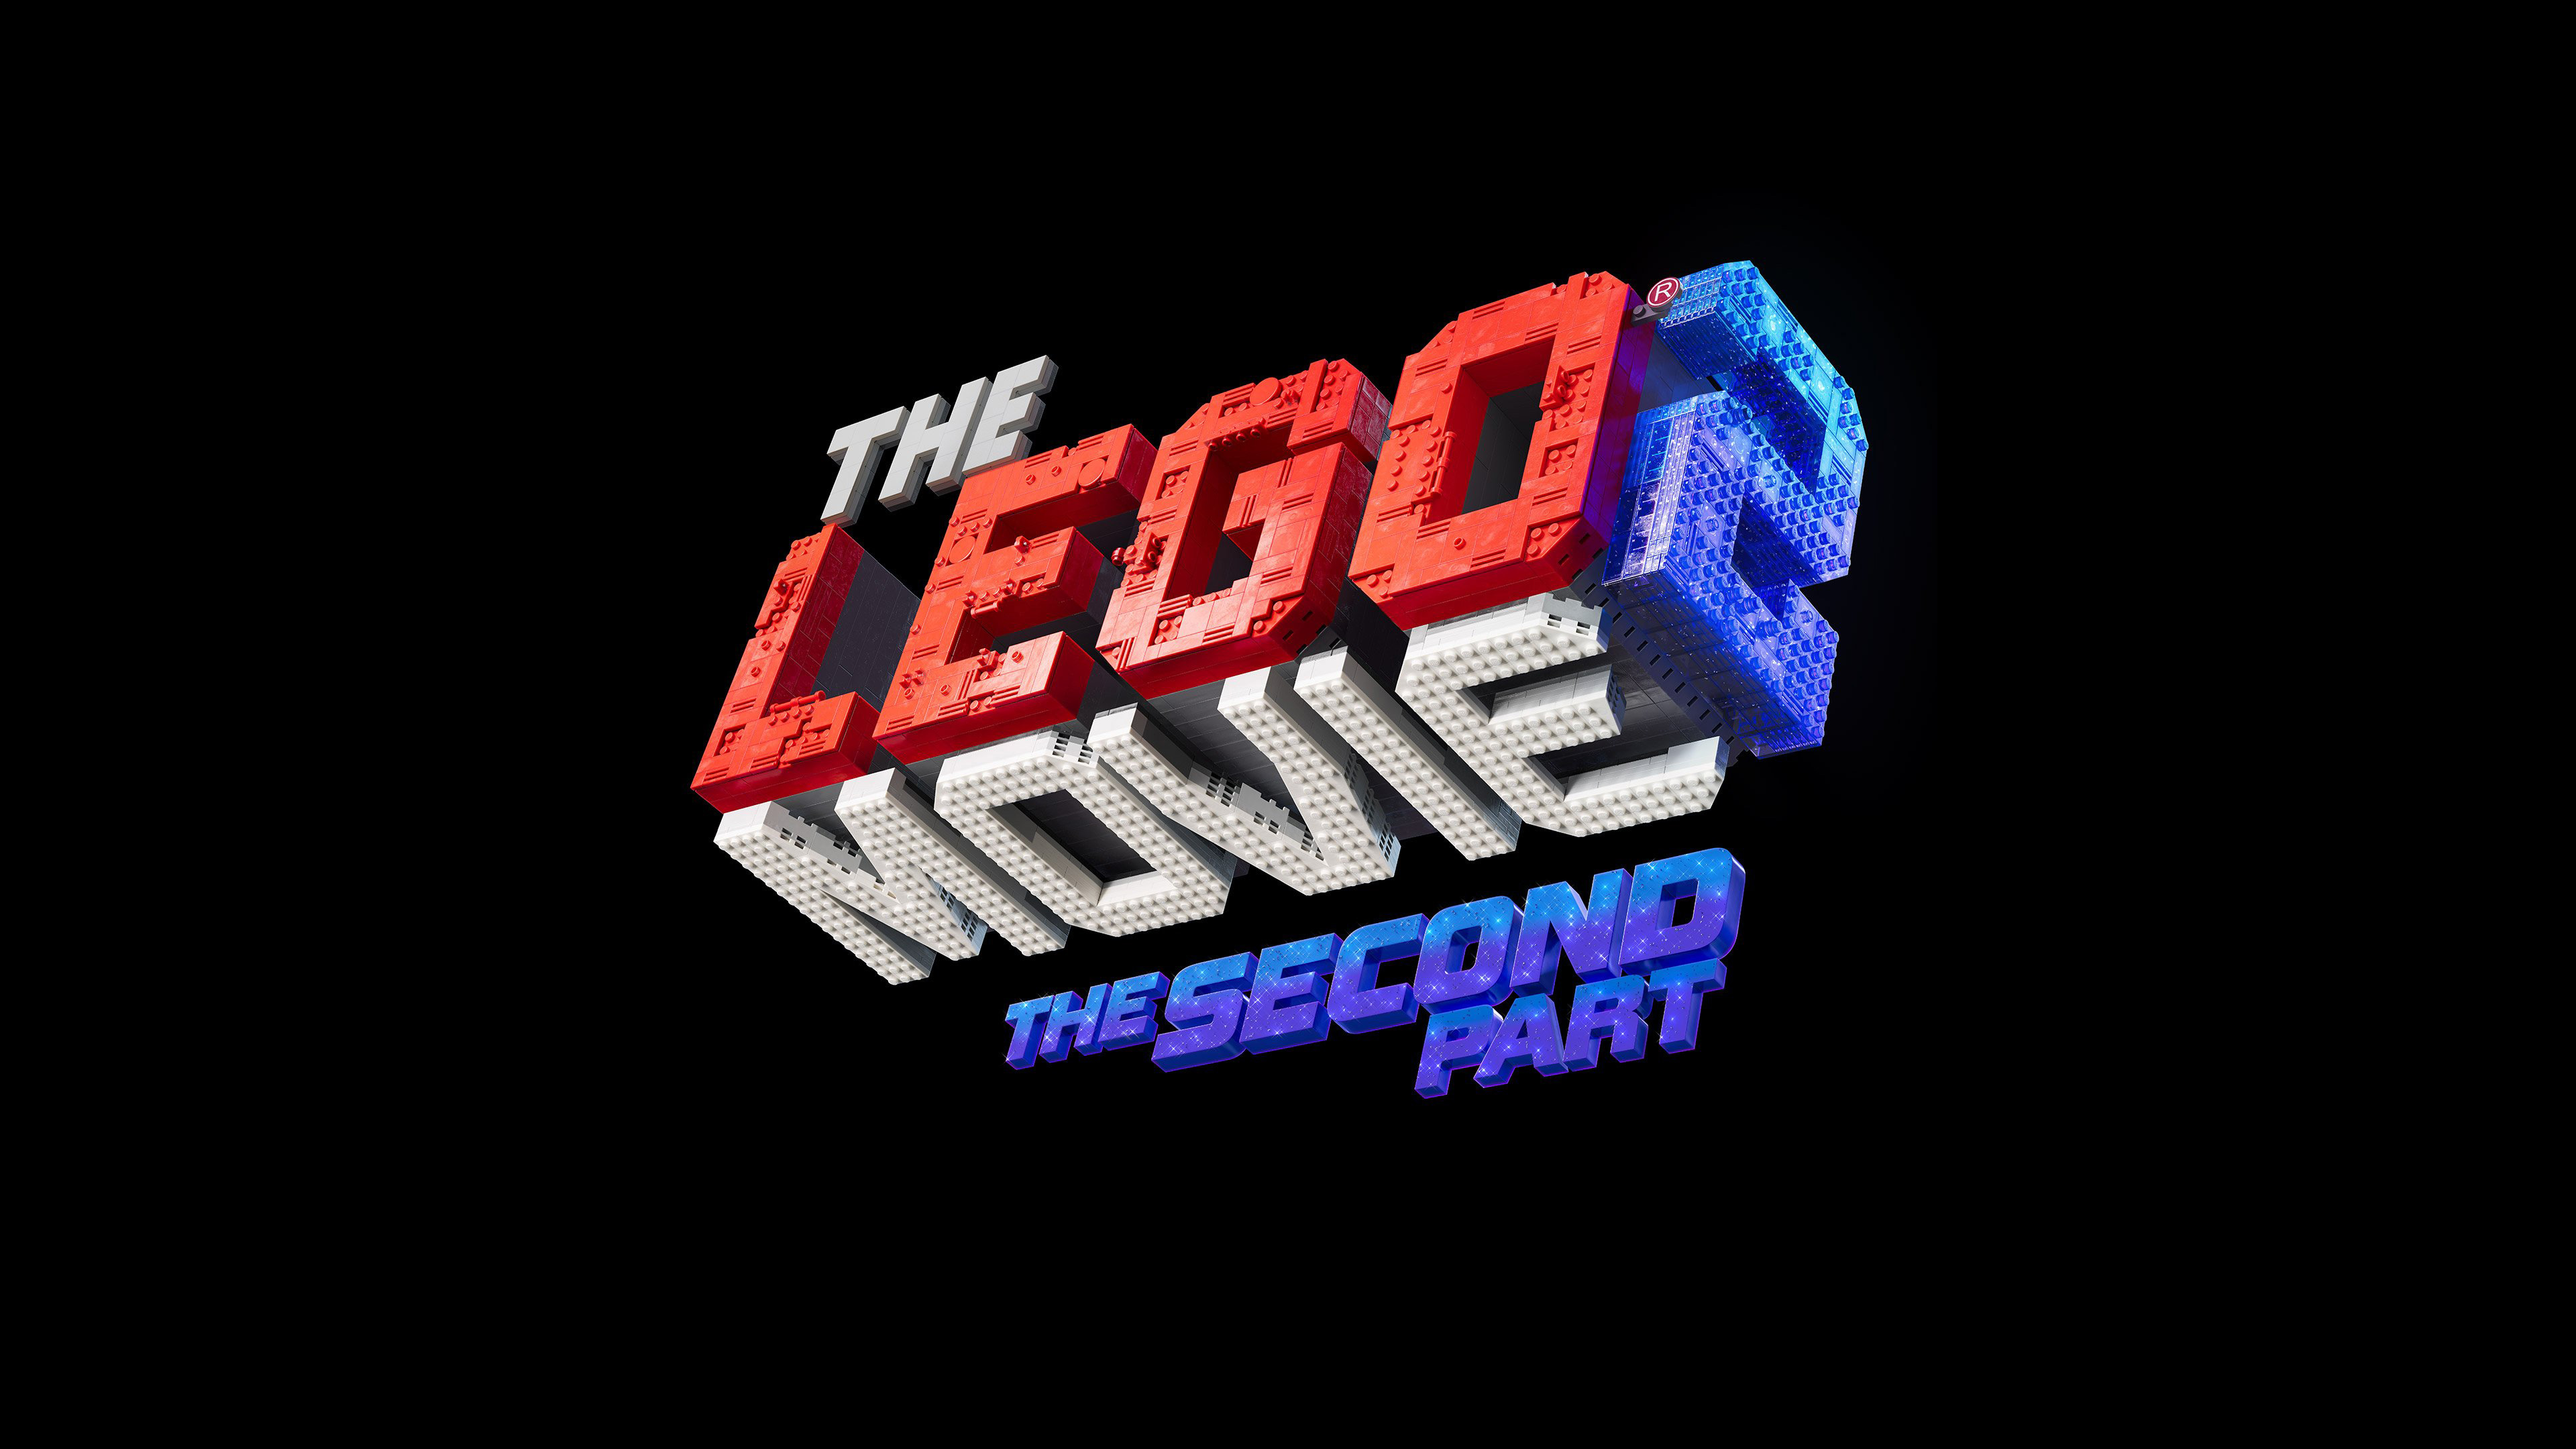 The Lego Movie 2 The Second Part 2019 4k Wallpapers Hd Wallpapers